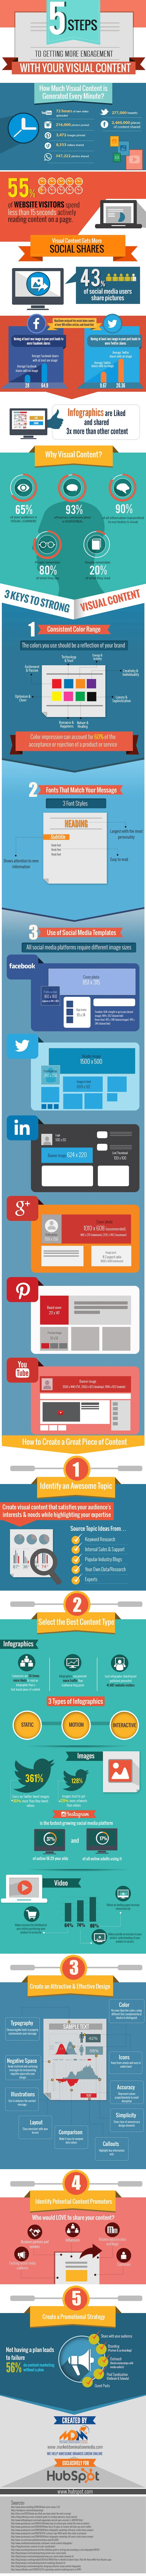 visual-content-engagement-boost-infographic